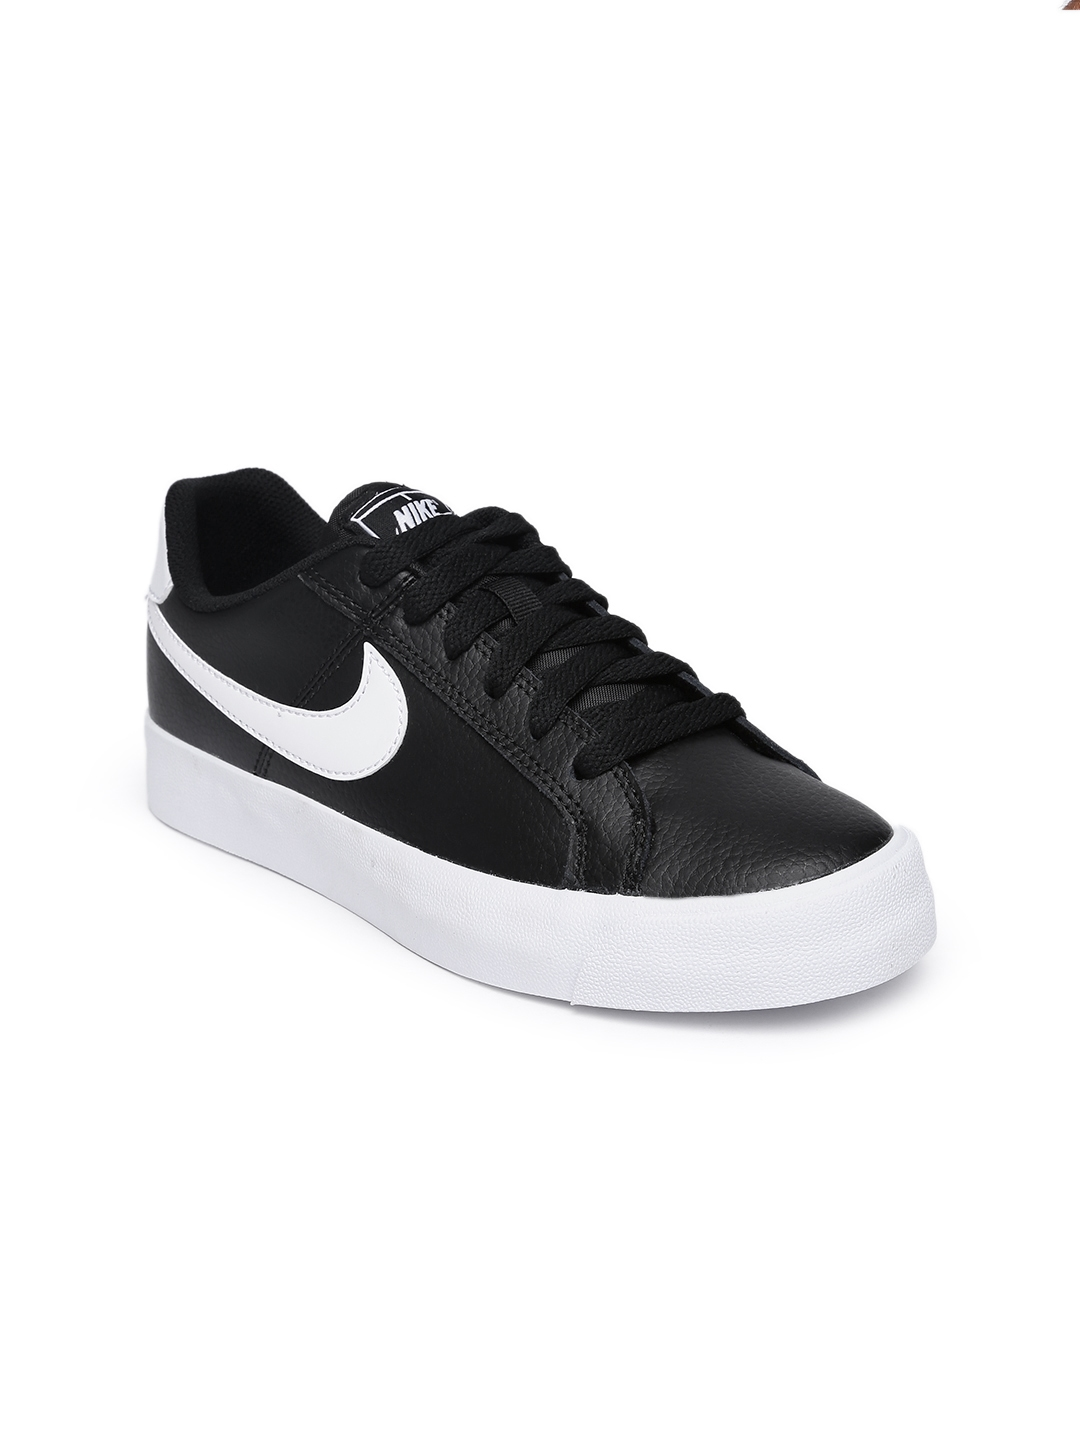 48f5617f2a20b Buy Nike Women Black Court Royale Leather Sneakers - Casual Shoes ...